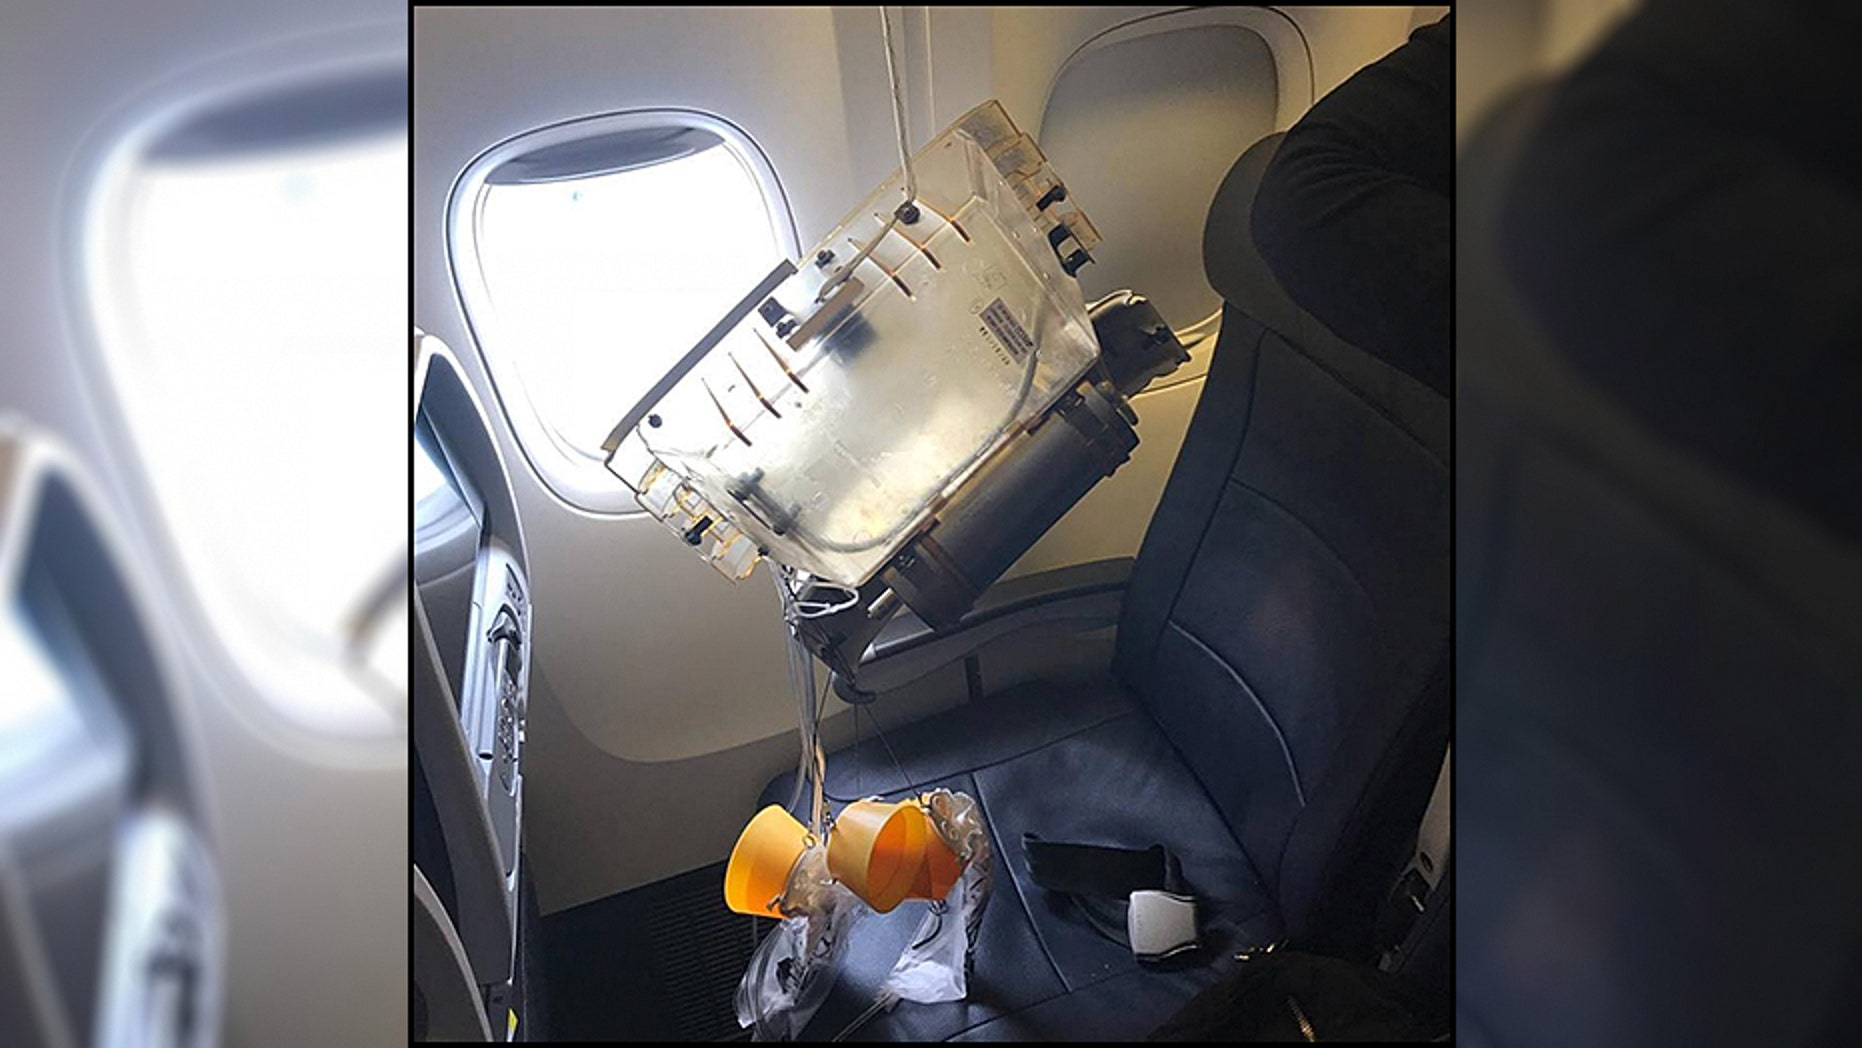 An oxygen canister fell from the ceiling of an American Airlines plane during landing, hitting a small child in the head.